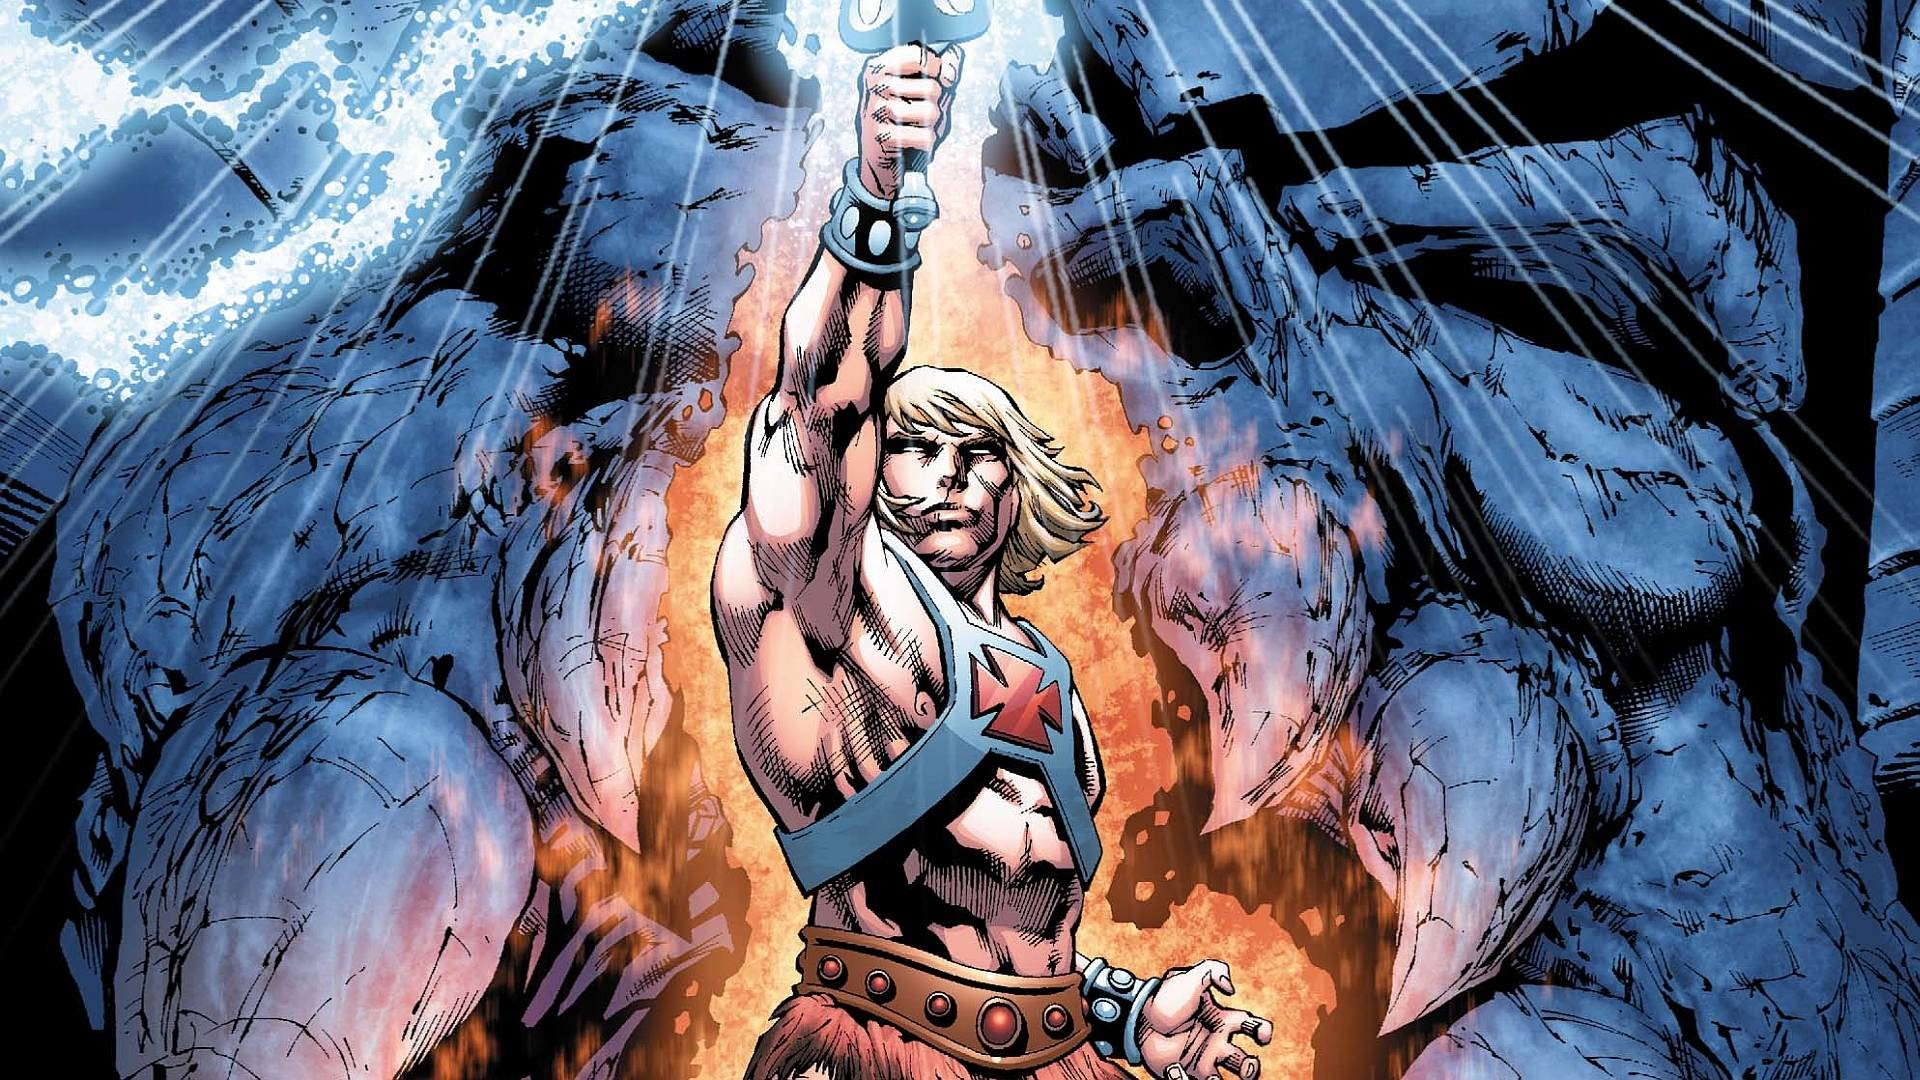 He-man And The Masters Of The Universe Wallpaper 11  